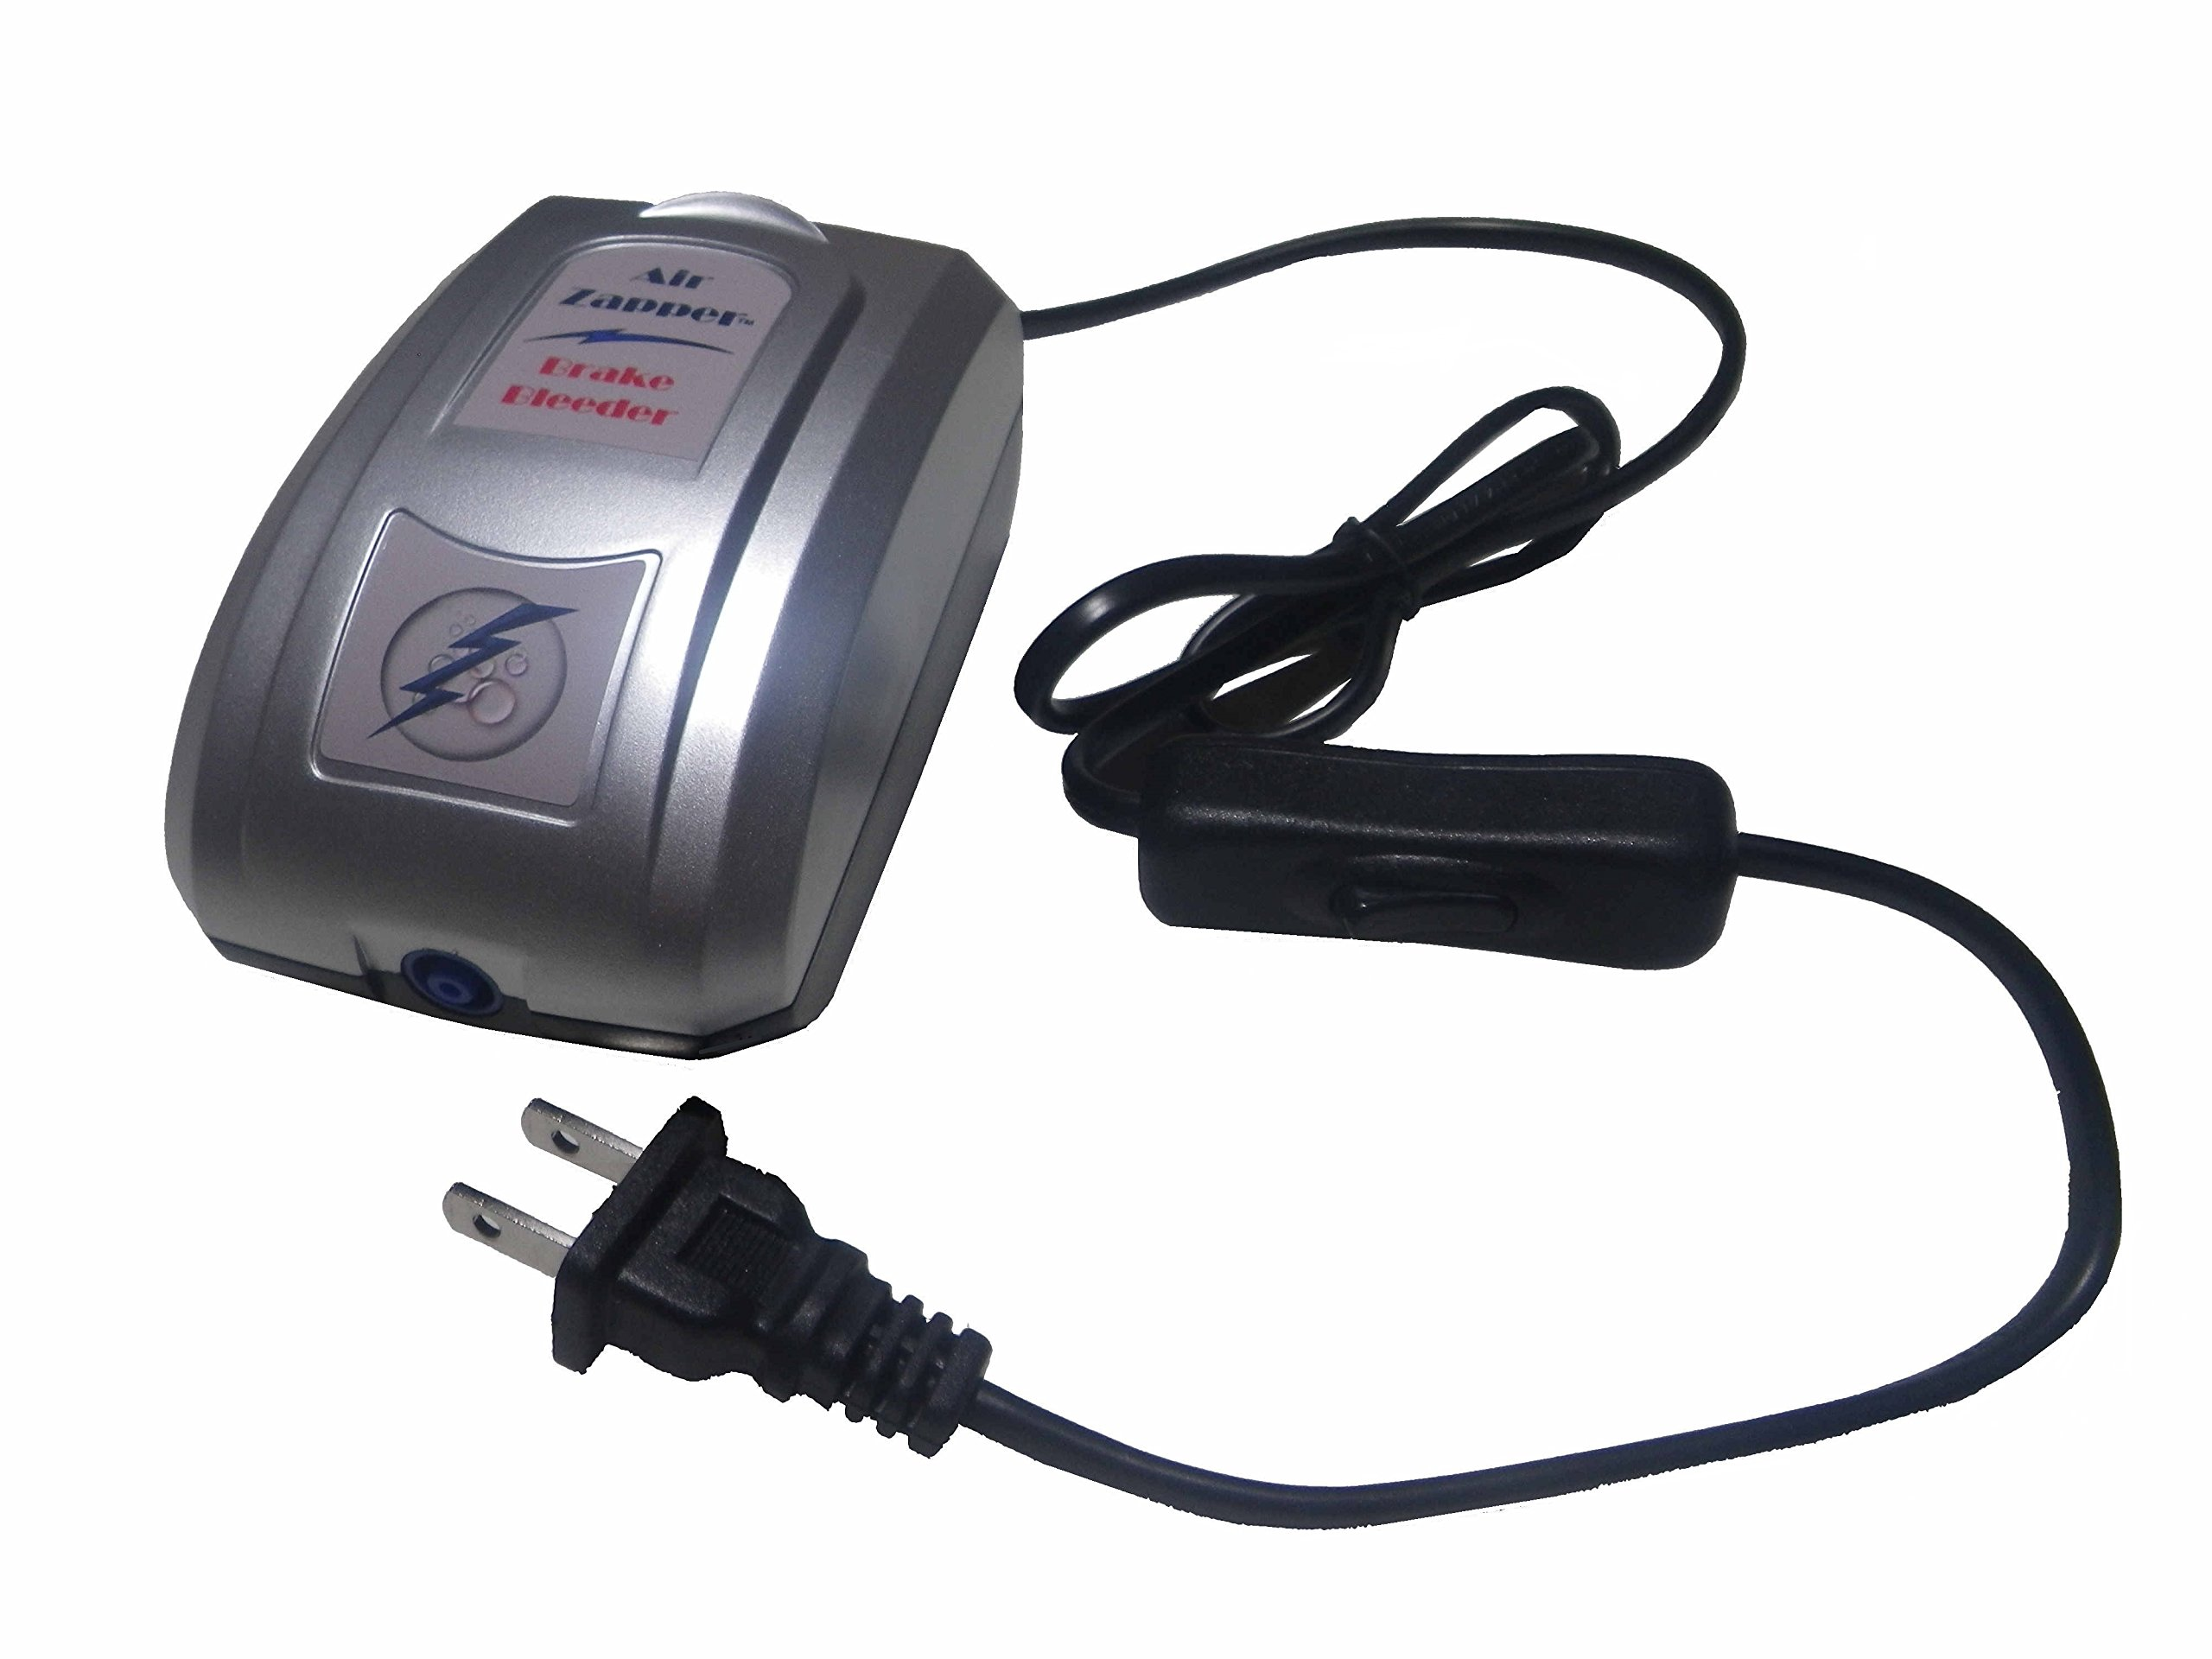 Air Zapper Brake Bleeder- Lightning Fast and Hands-Free by Air Zapper (Image #2)